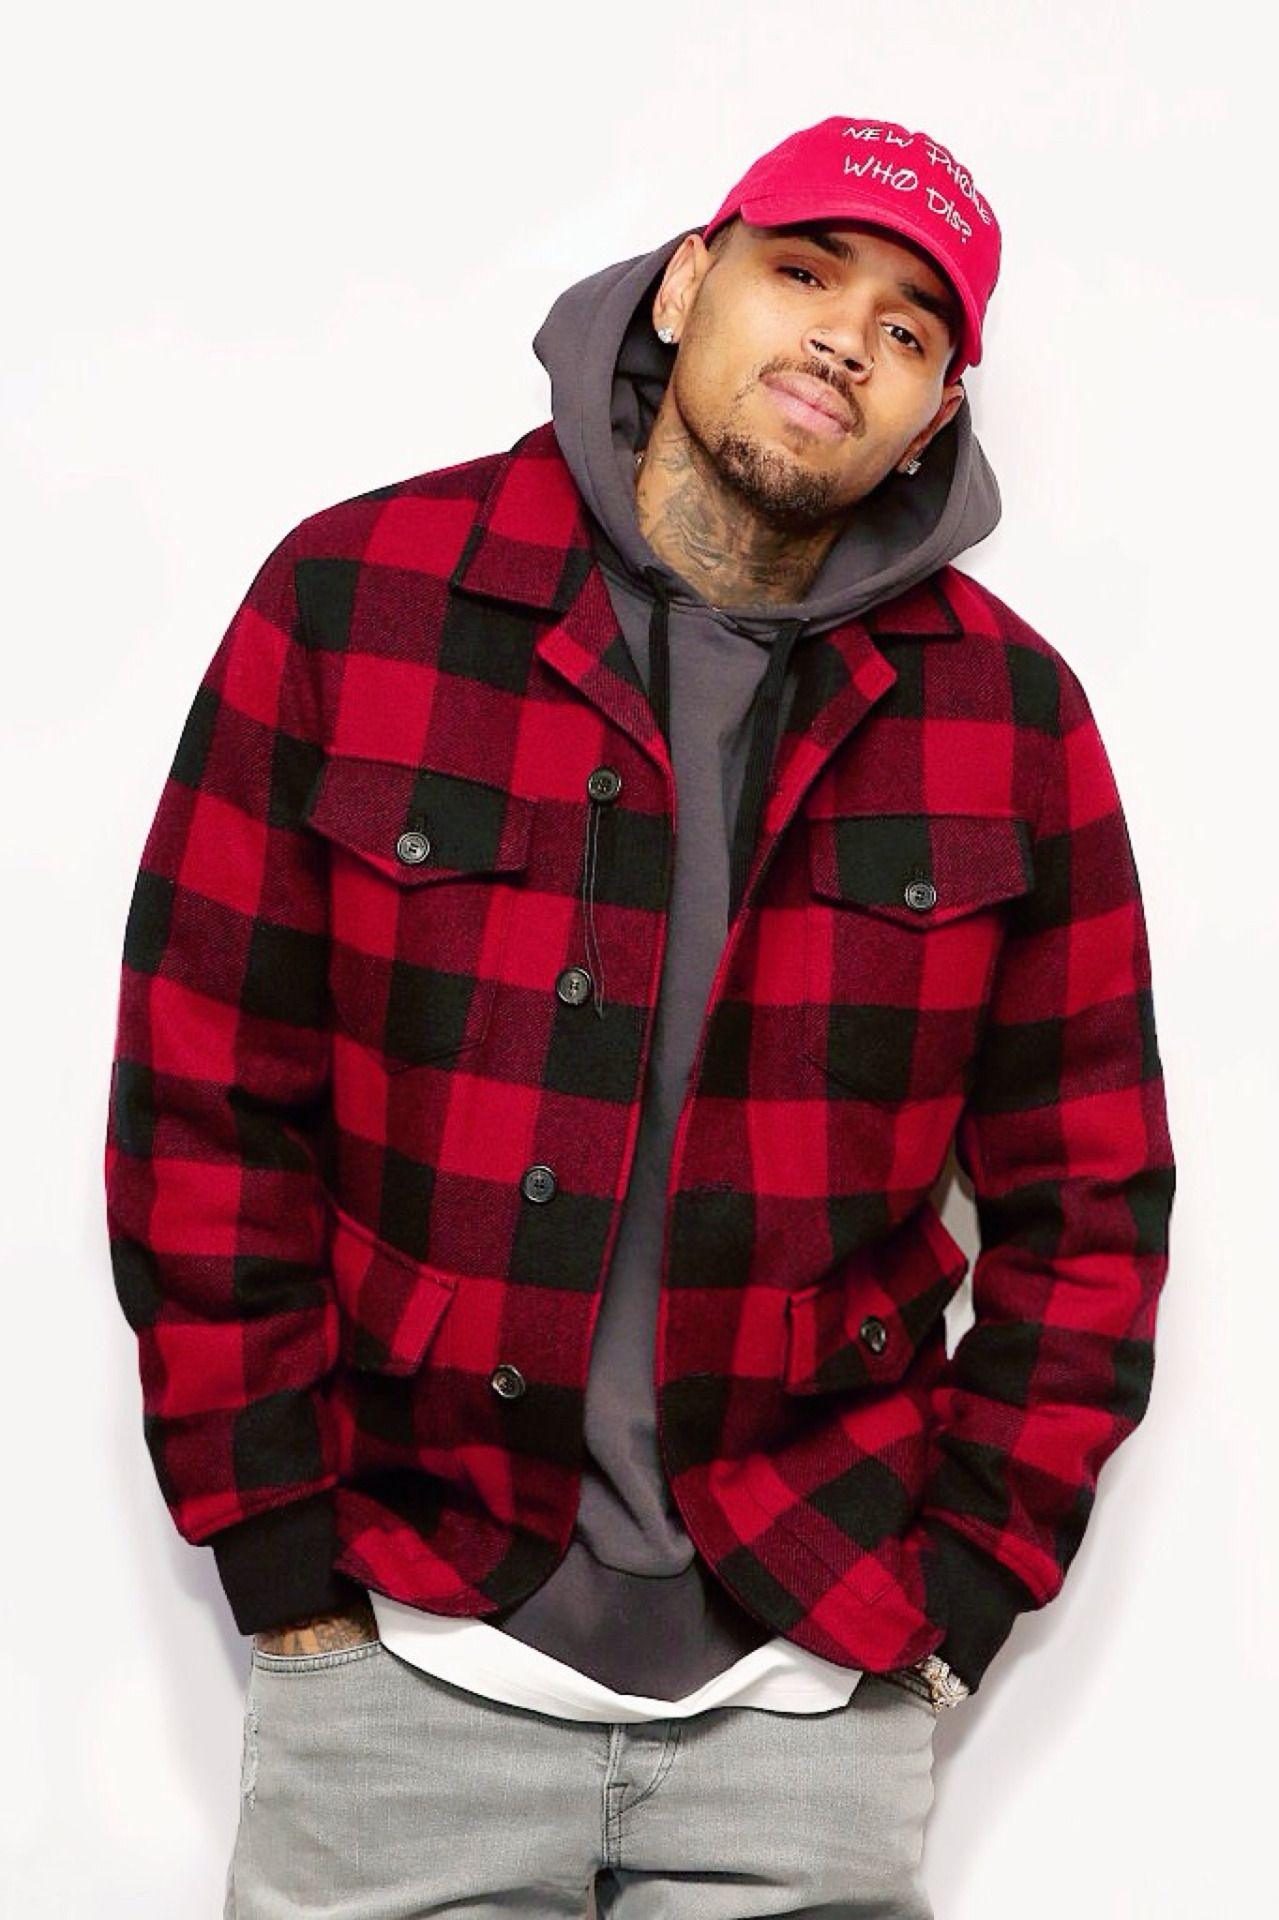 The 25+ best Chris brown pictures ideas on Pinterest ...